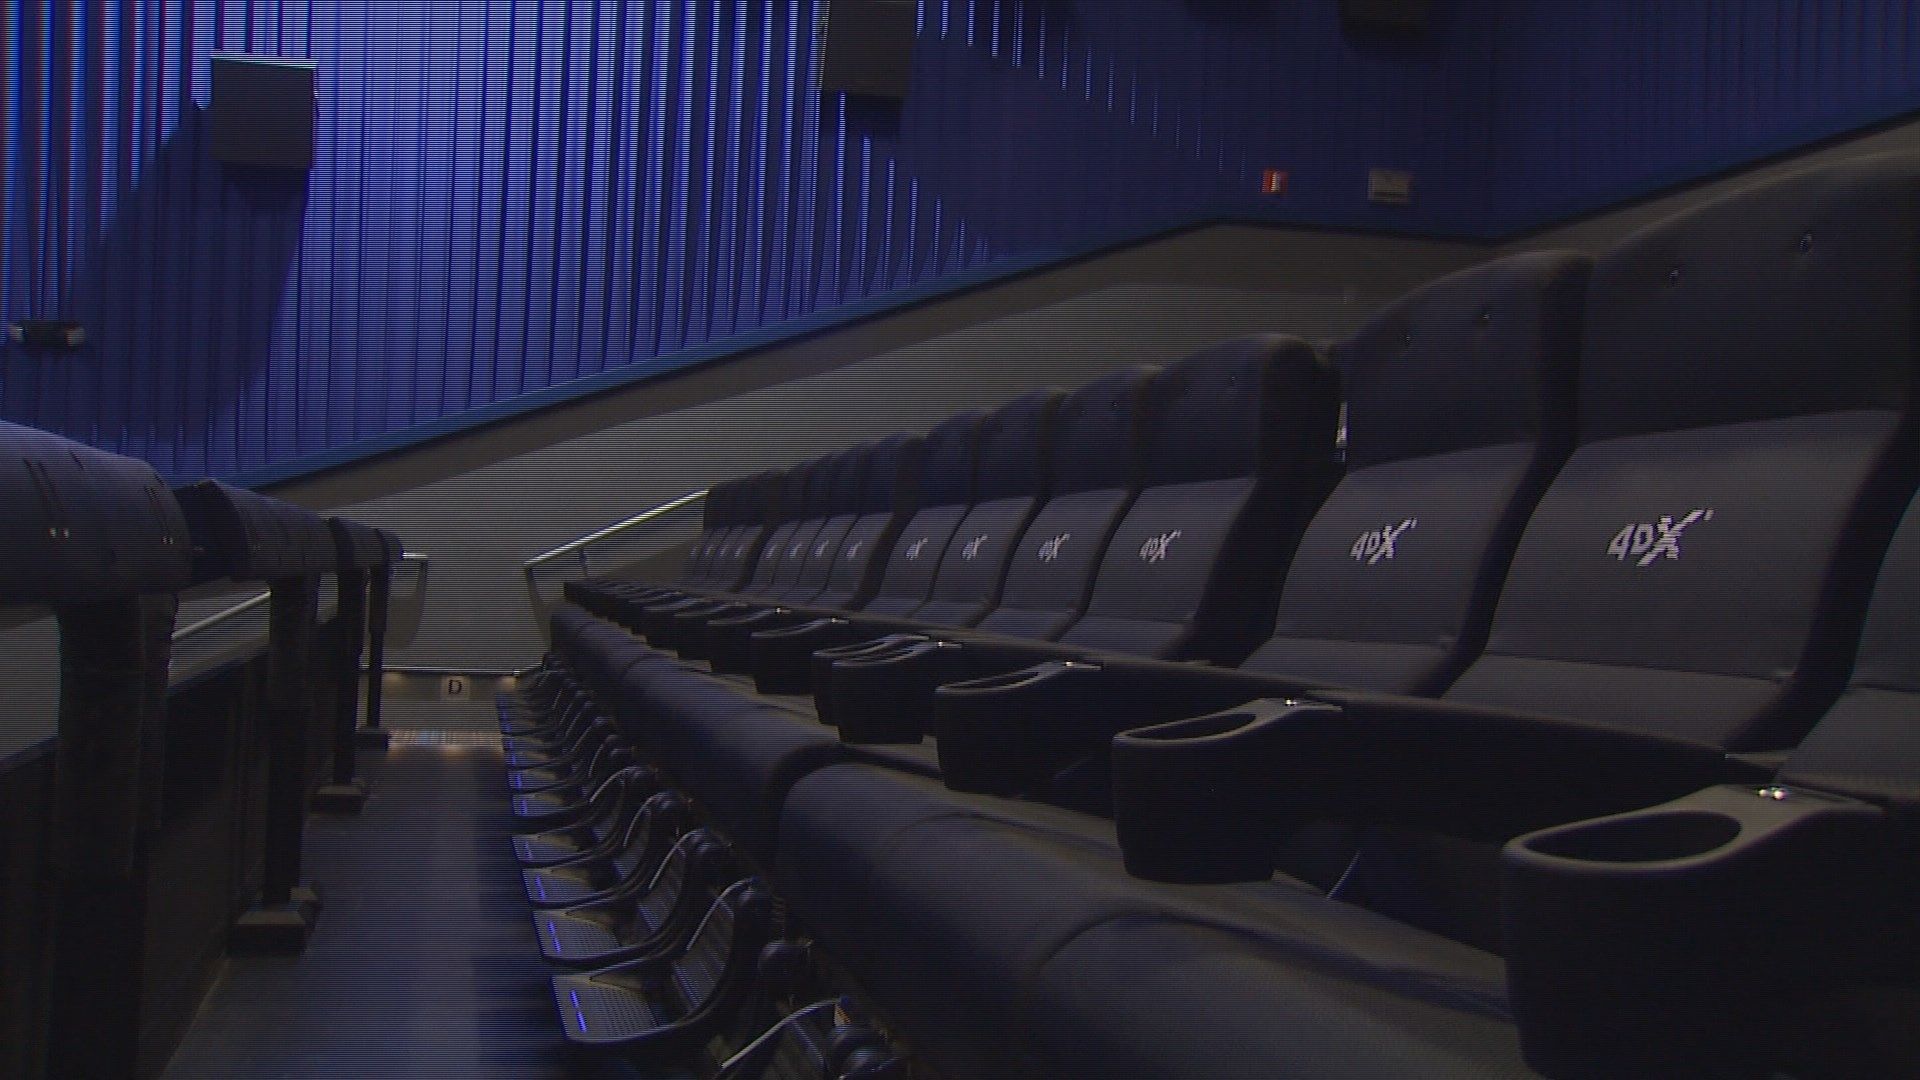 Gas Prices Seattle >> king5.com | 4DX immersive movie experience coming to Seattle